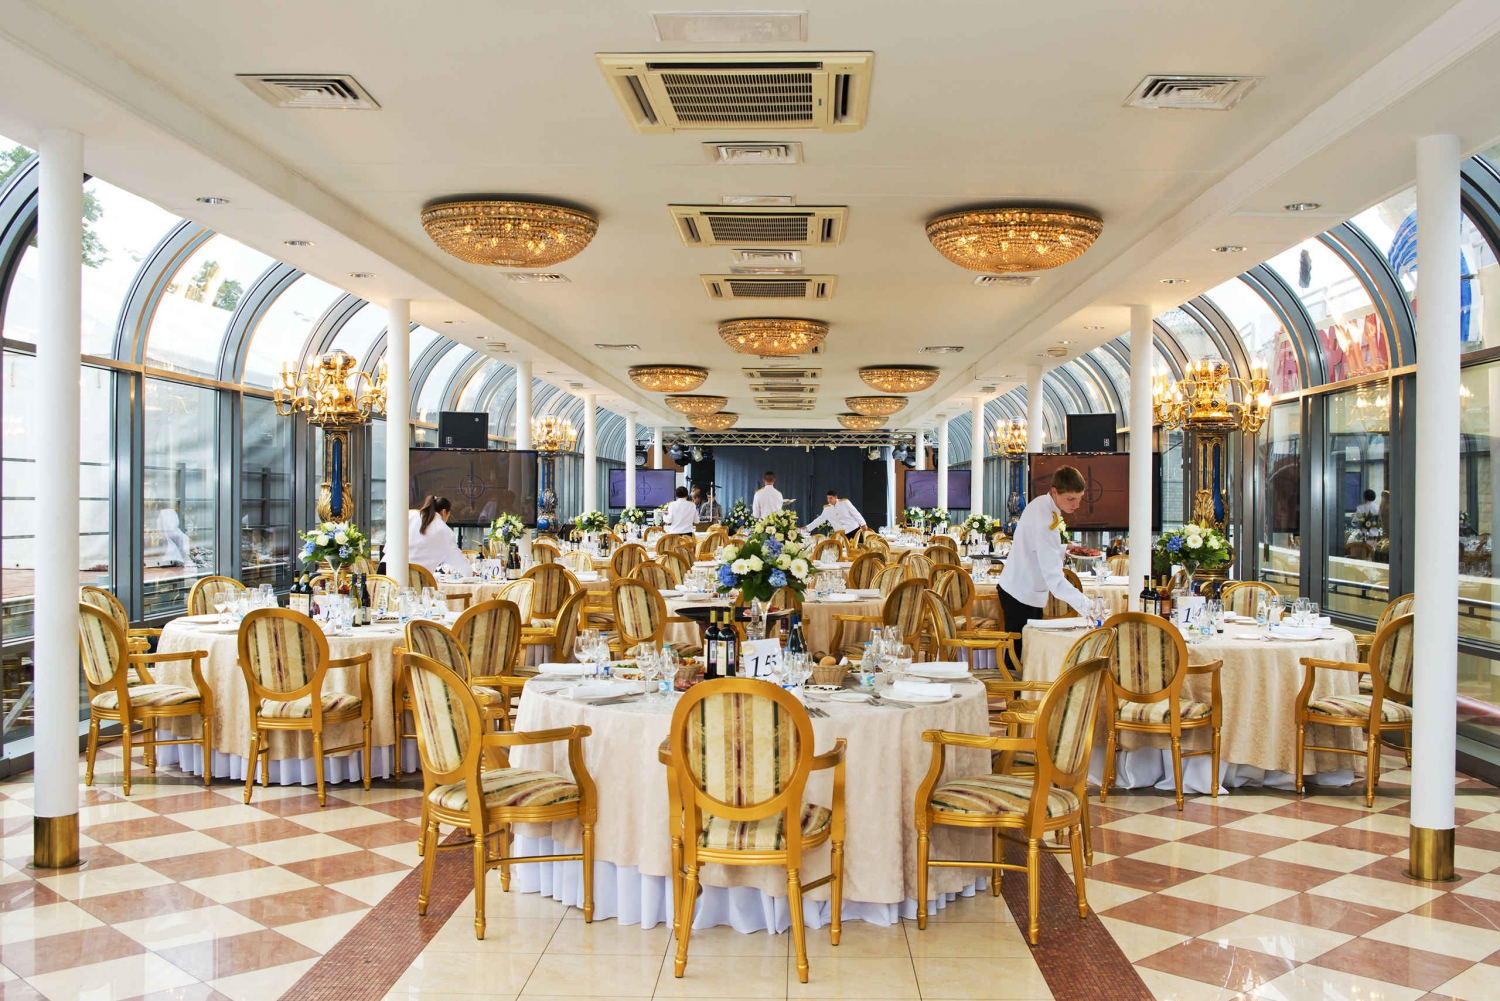 Moscow River Luxury Dinner Cruise with VIP Service